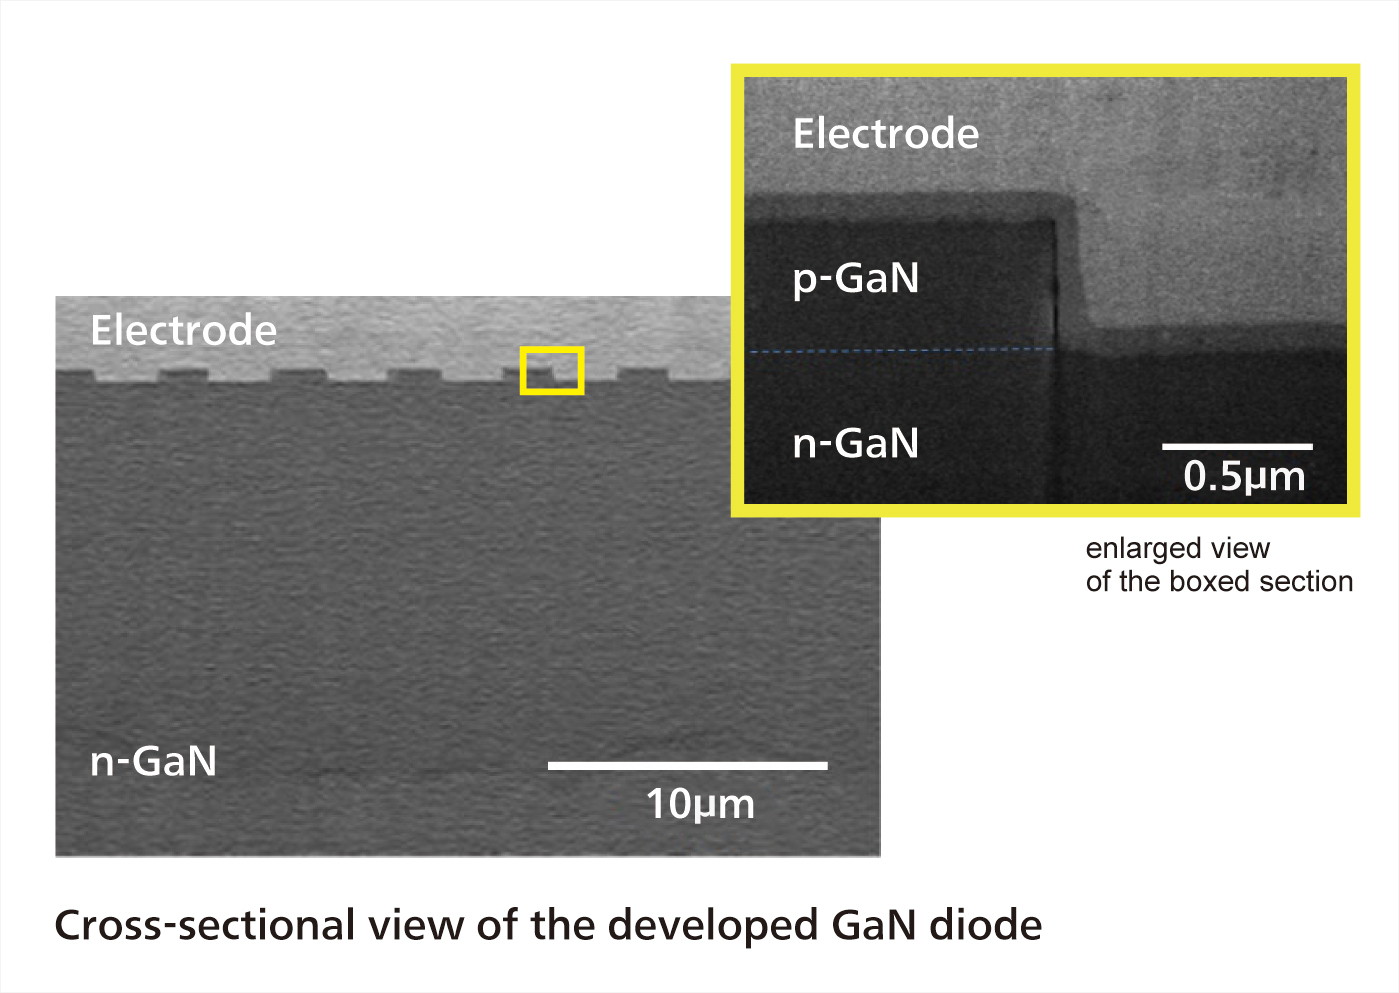 GaN gallium nitride diode picture from panasonic